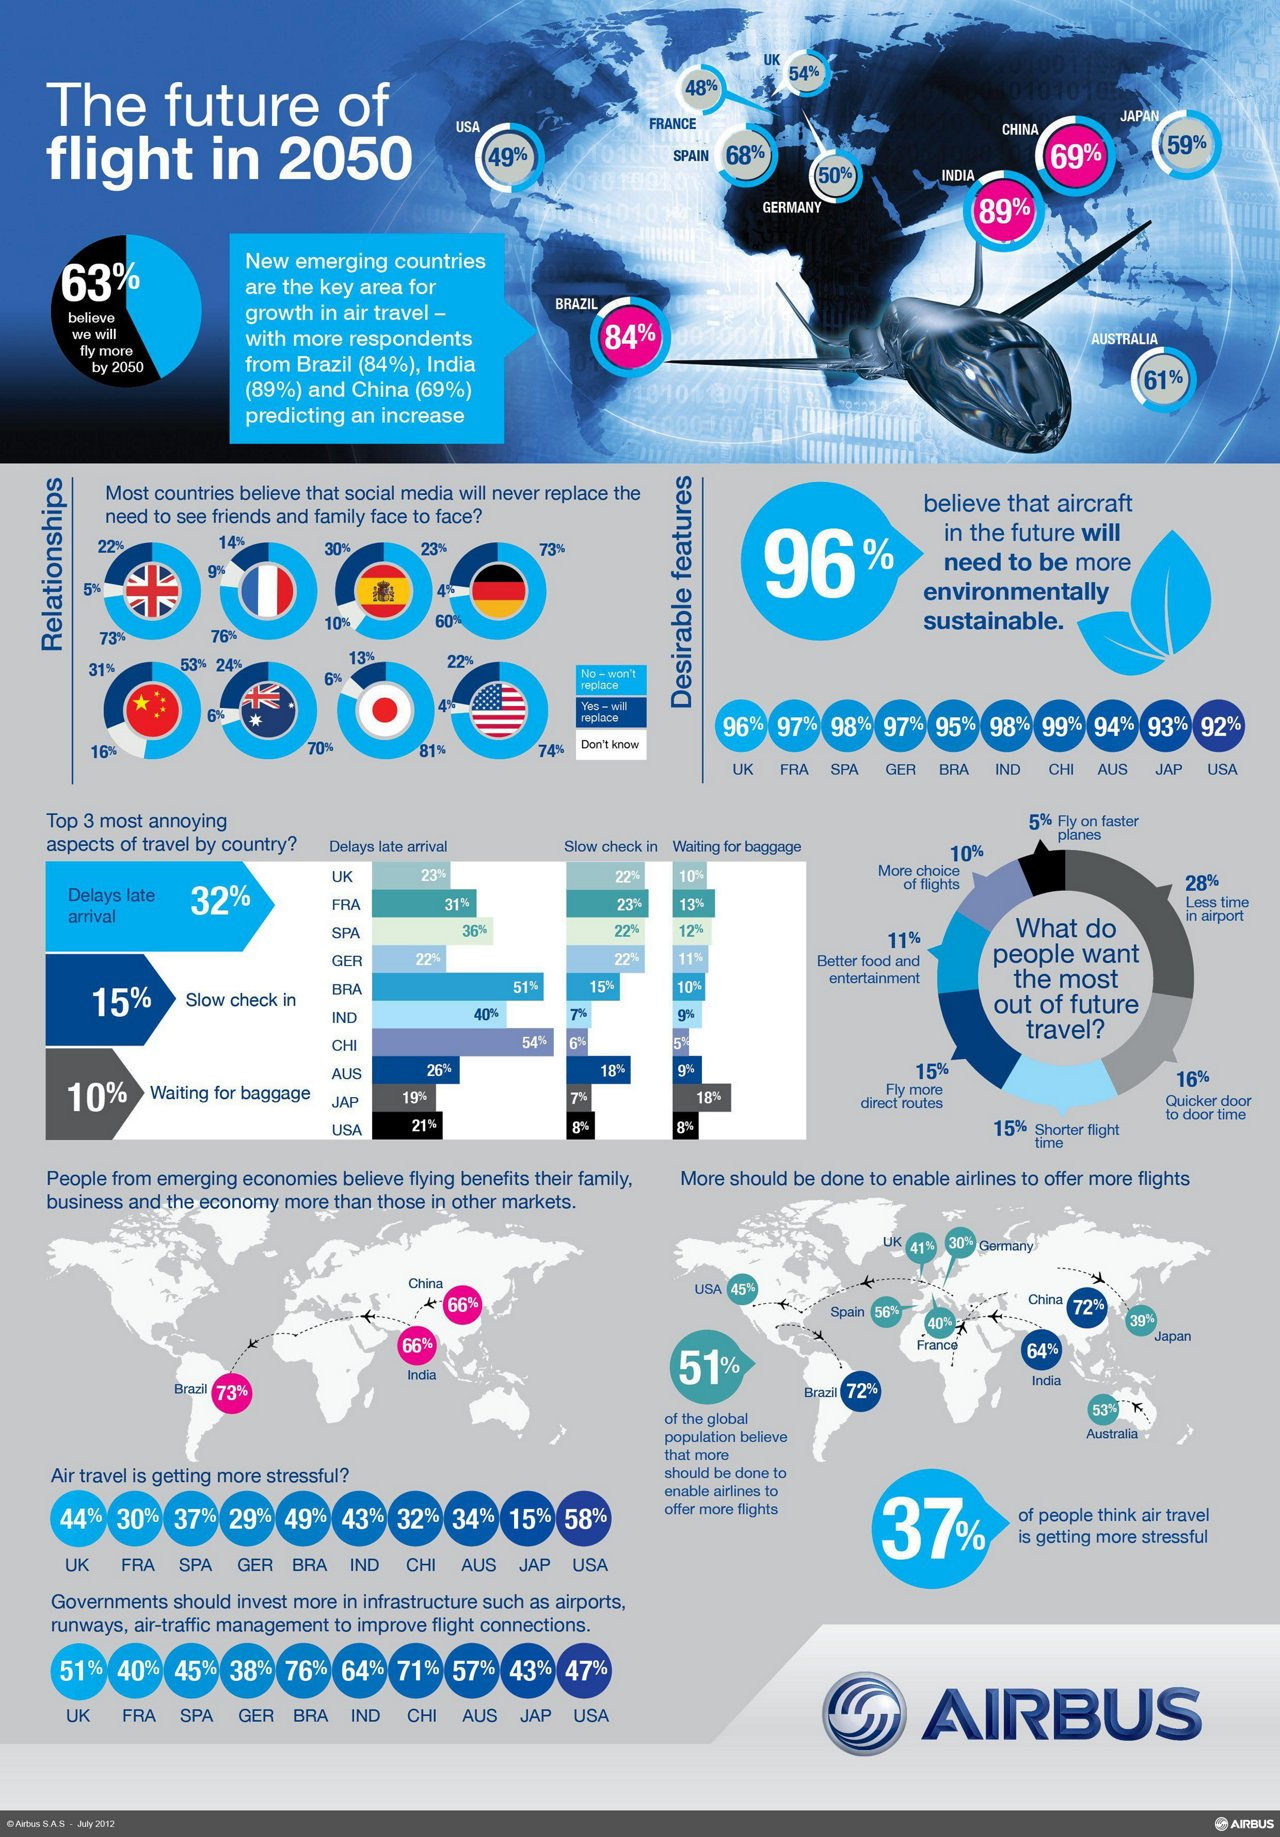 Airbus the Future of Flight - by country - infographic HI